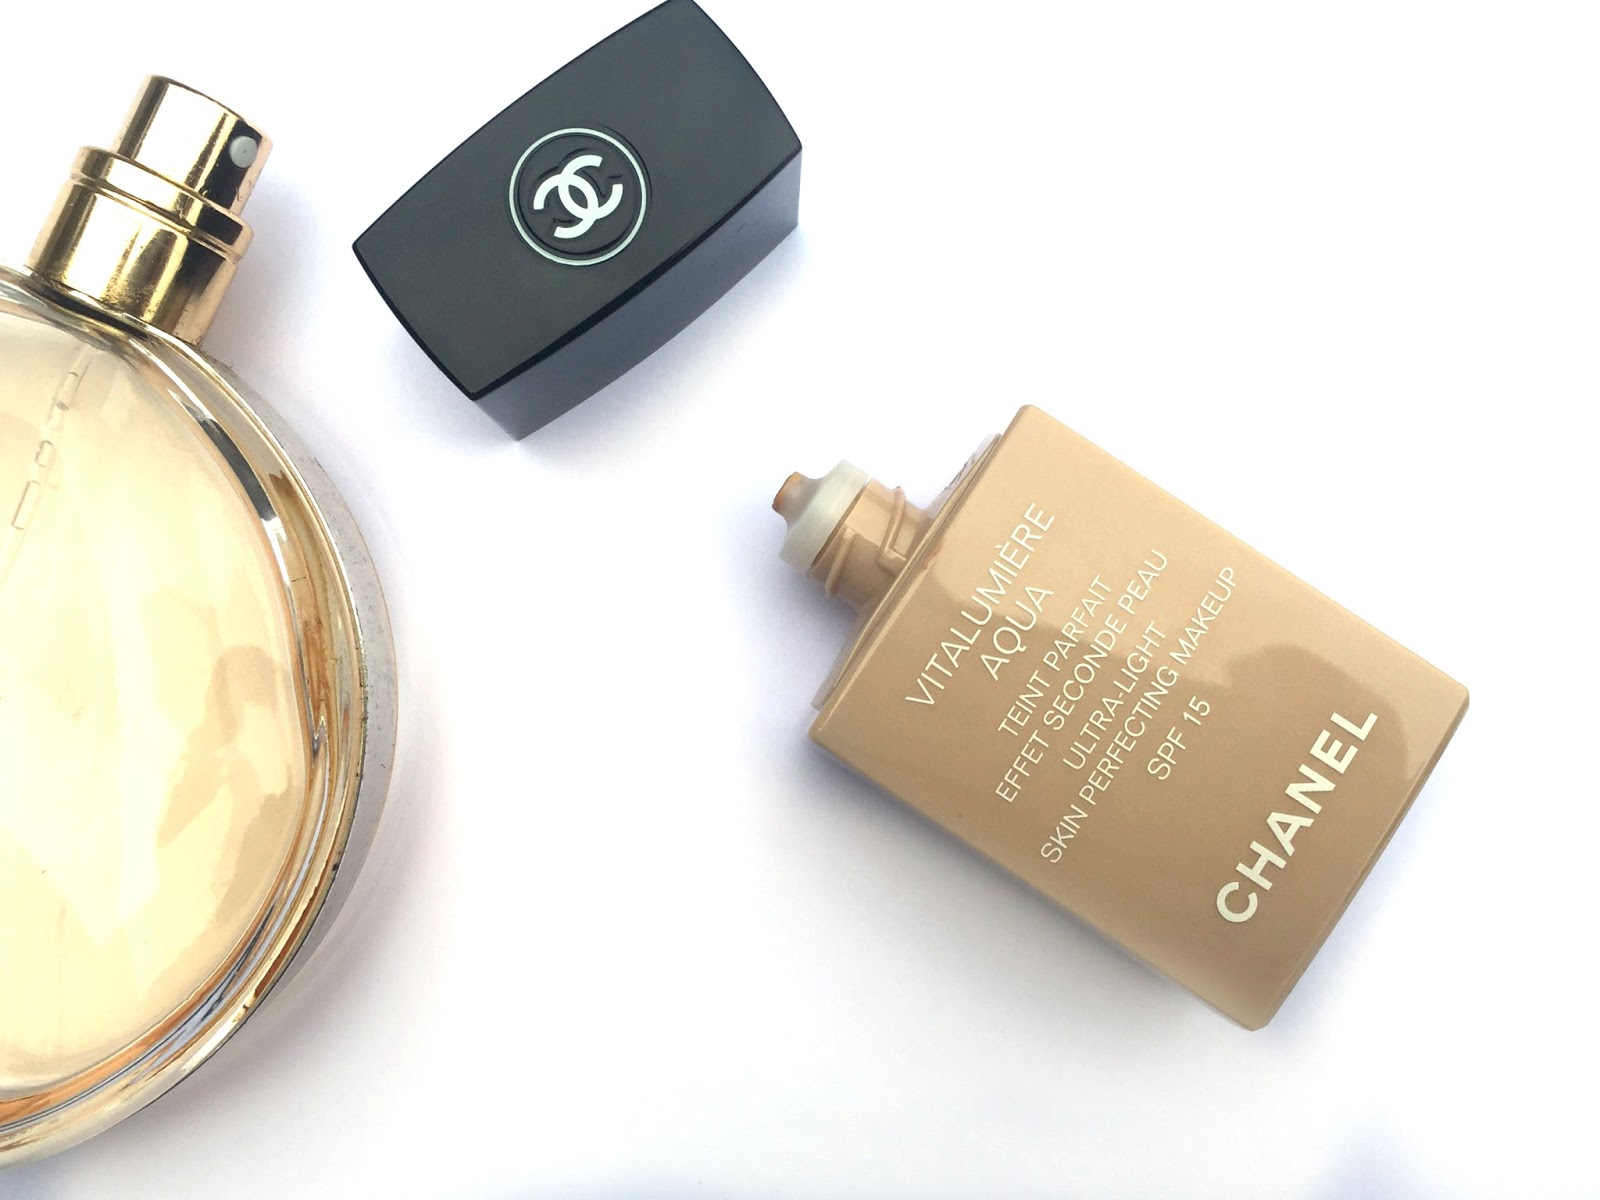 chanel vitalumiere aqua foundation